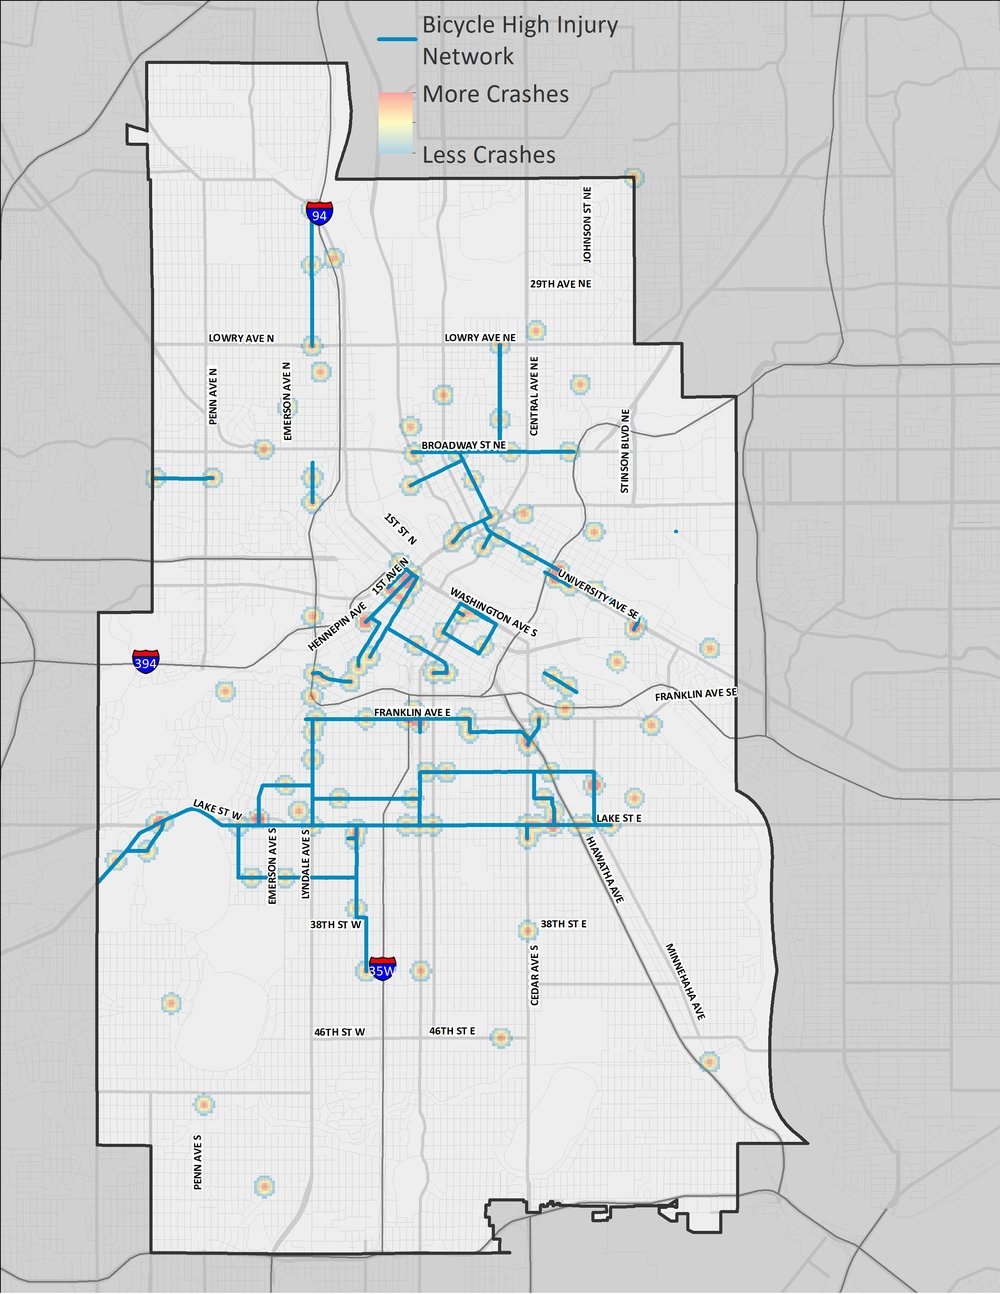 A map of Minneapolis showing the corridors and areas where bicycle-involved motor vehicle crashes are most prevalent.